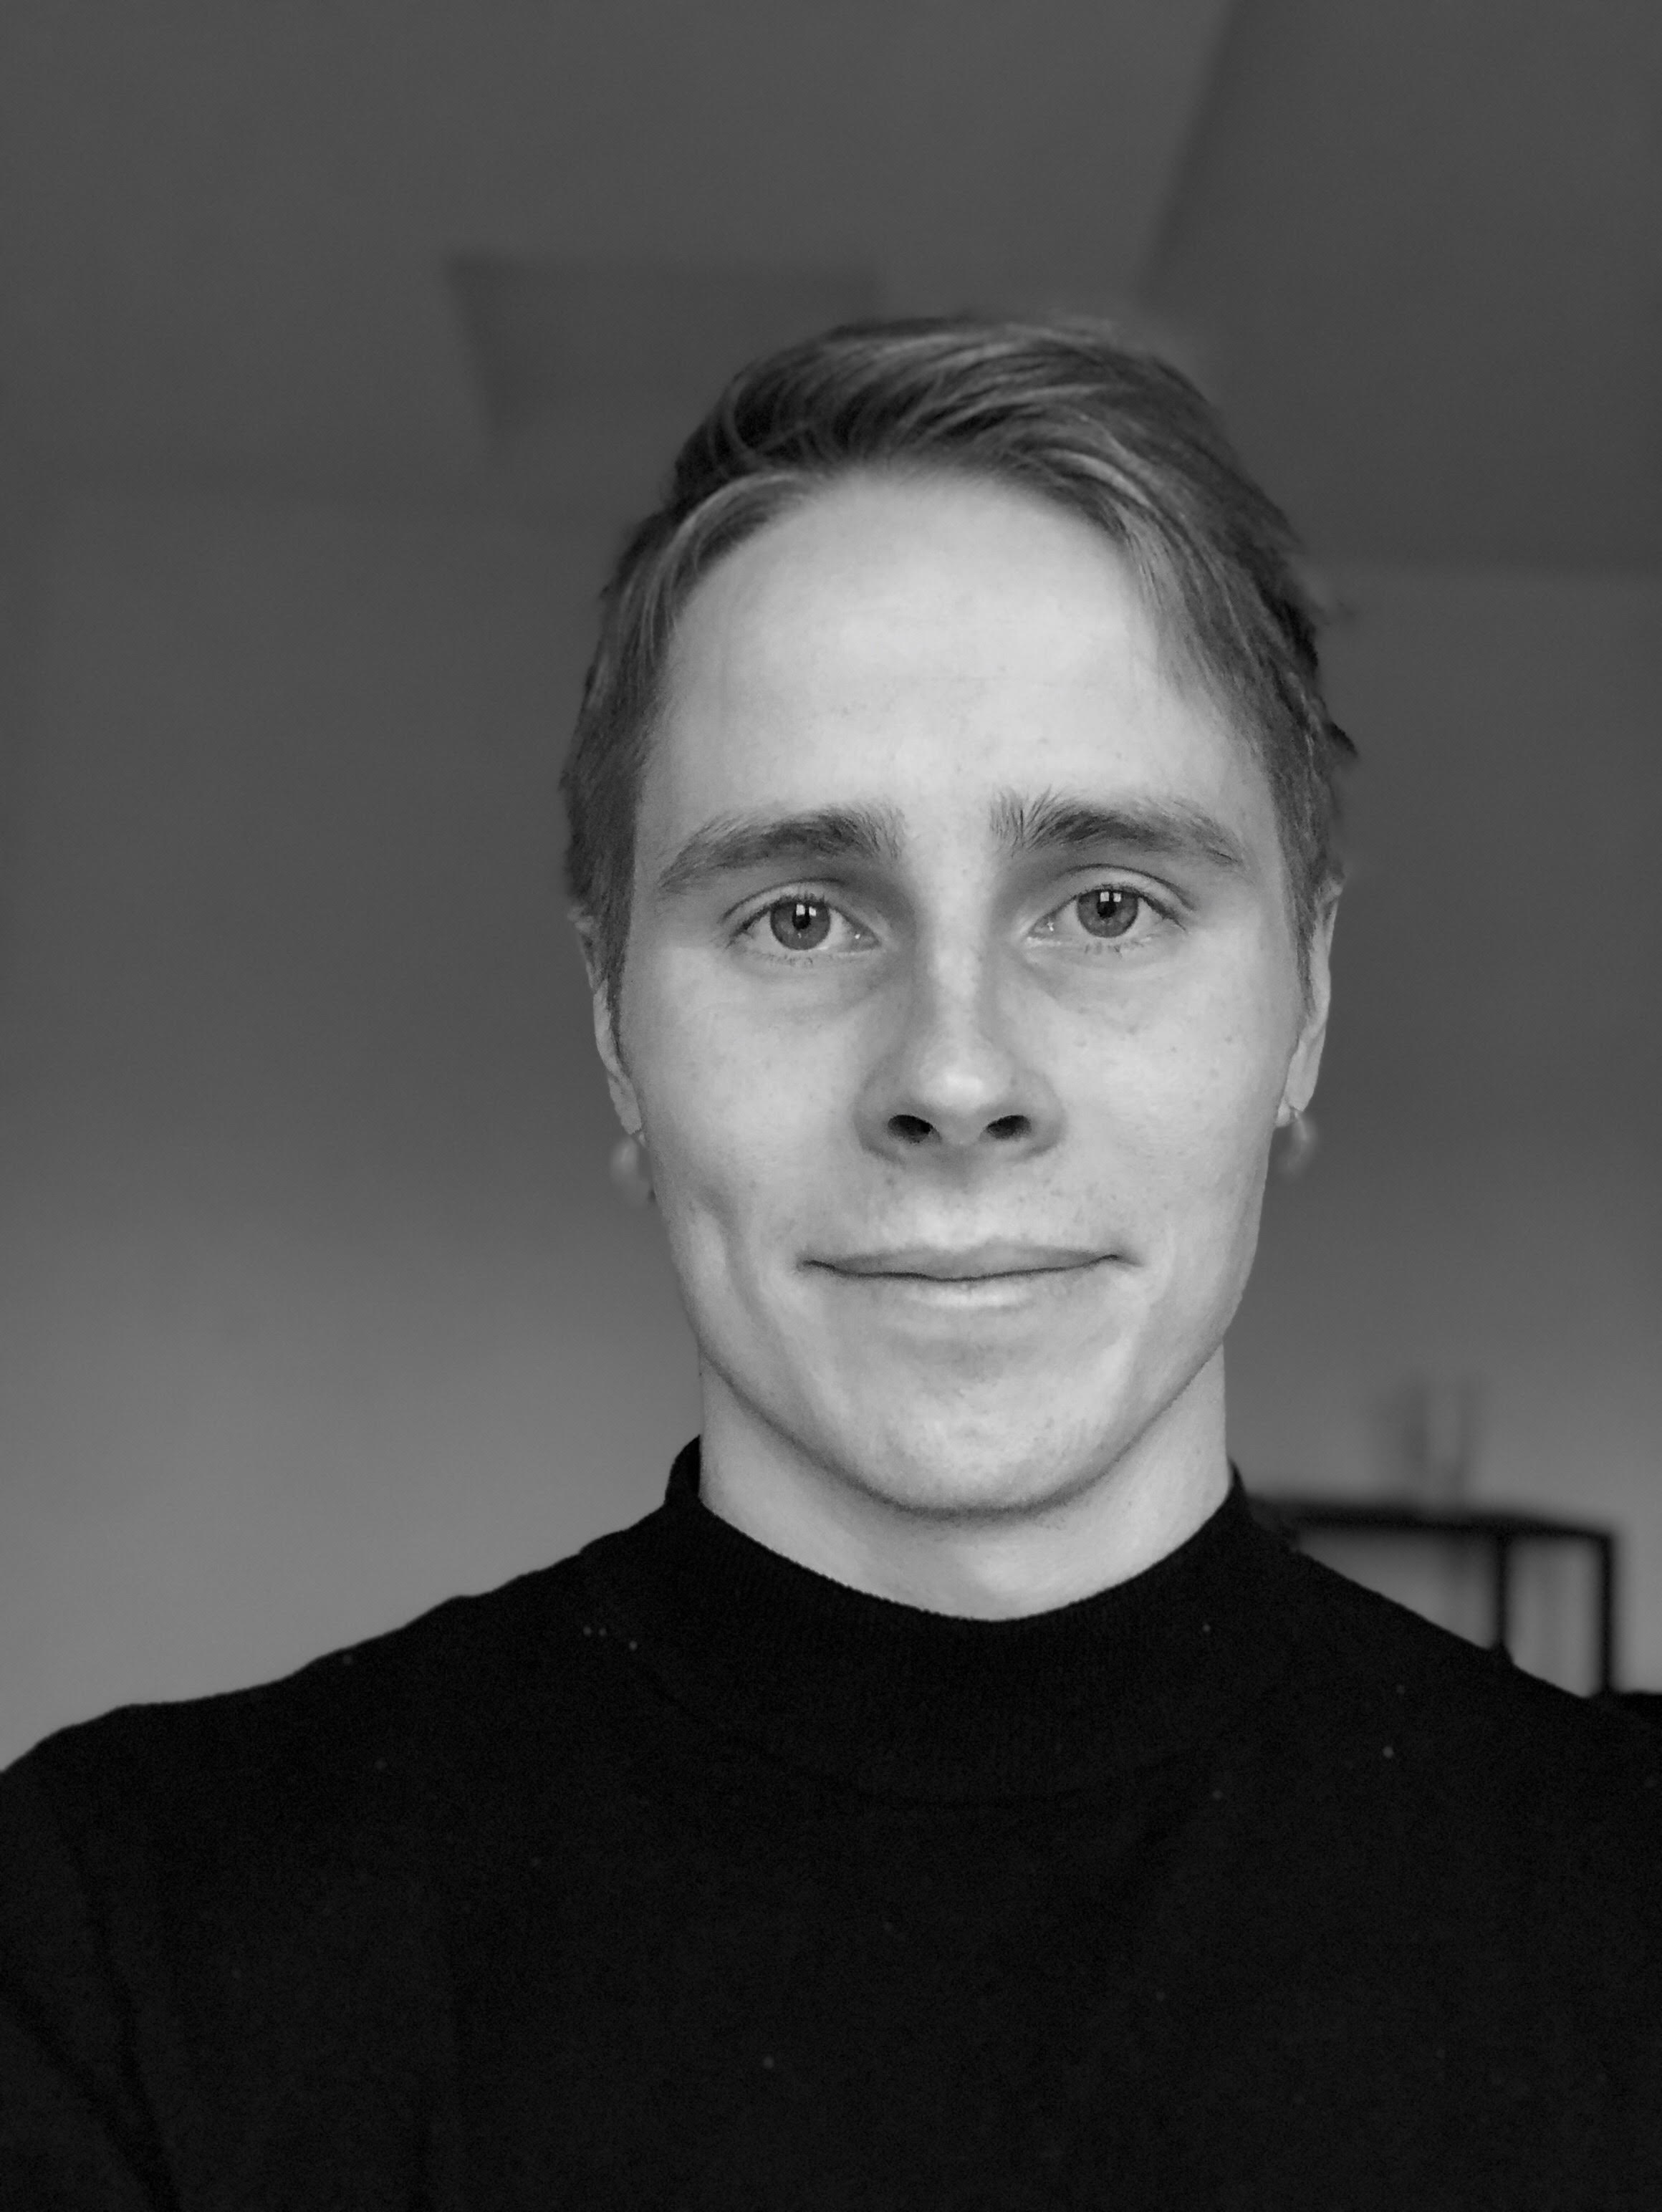 Ruben Laukkonen : Postdoc at Cognitive Psychology